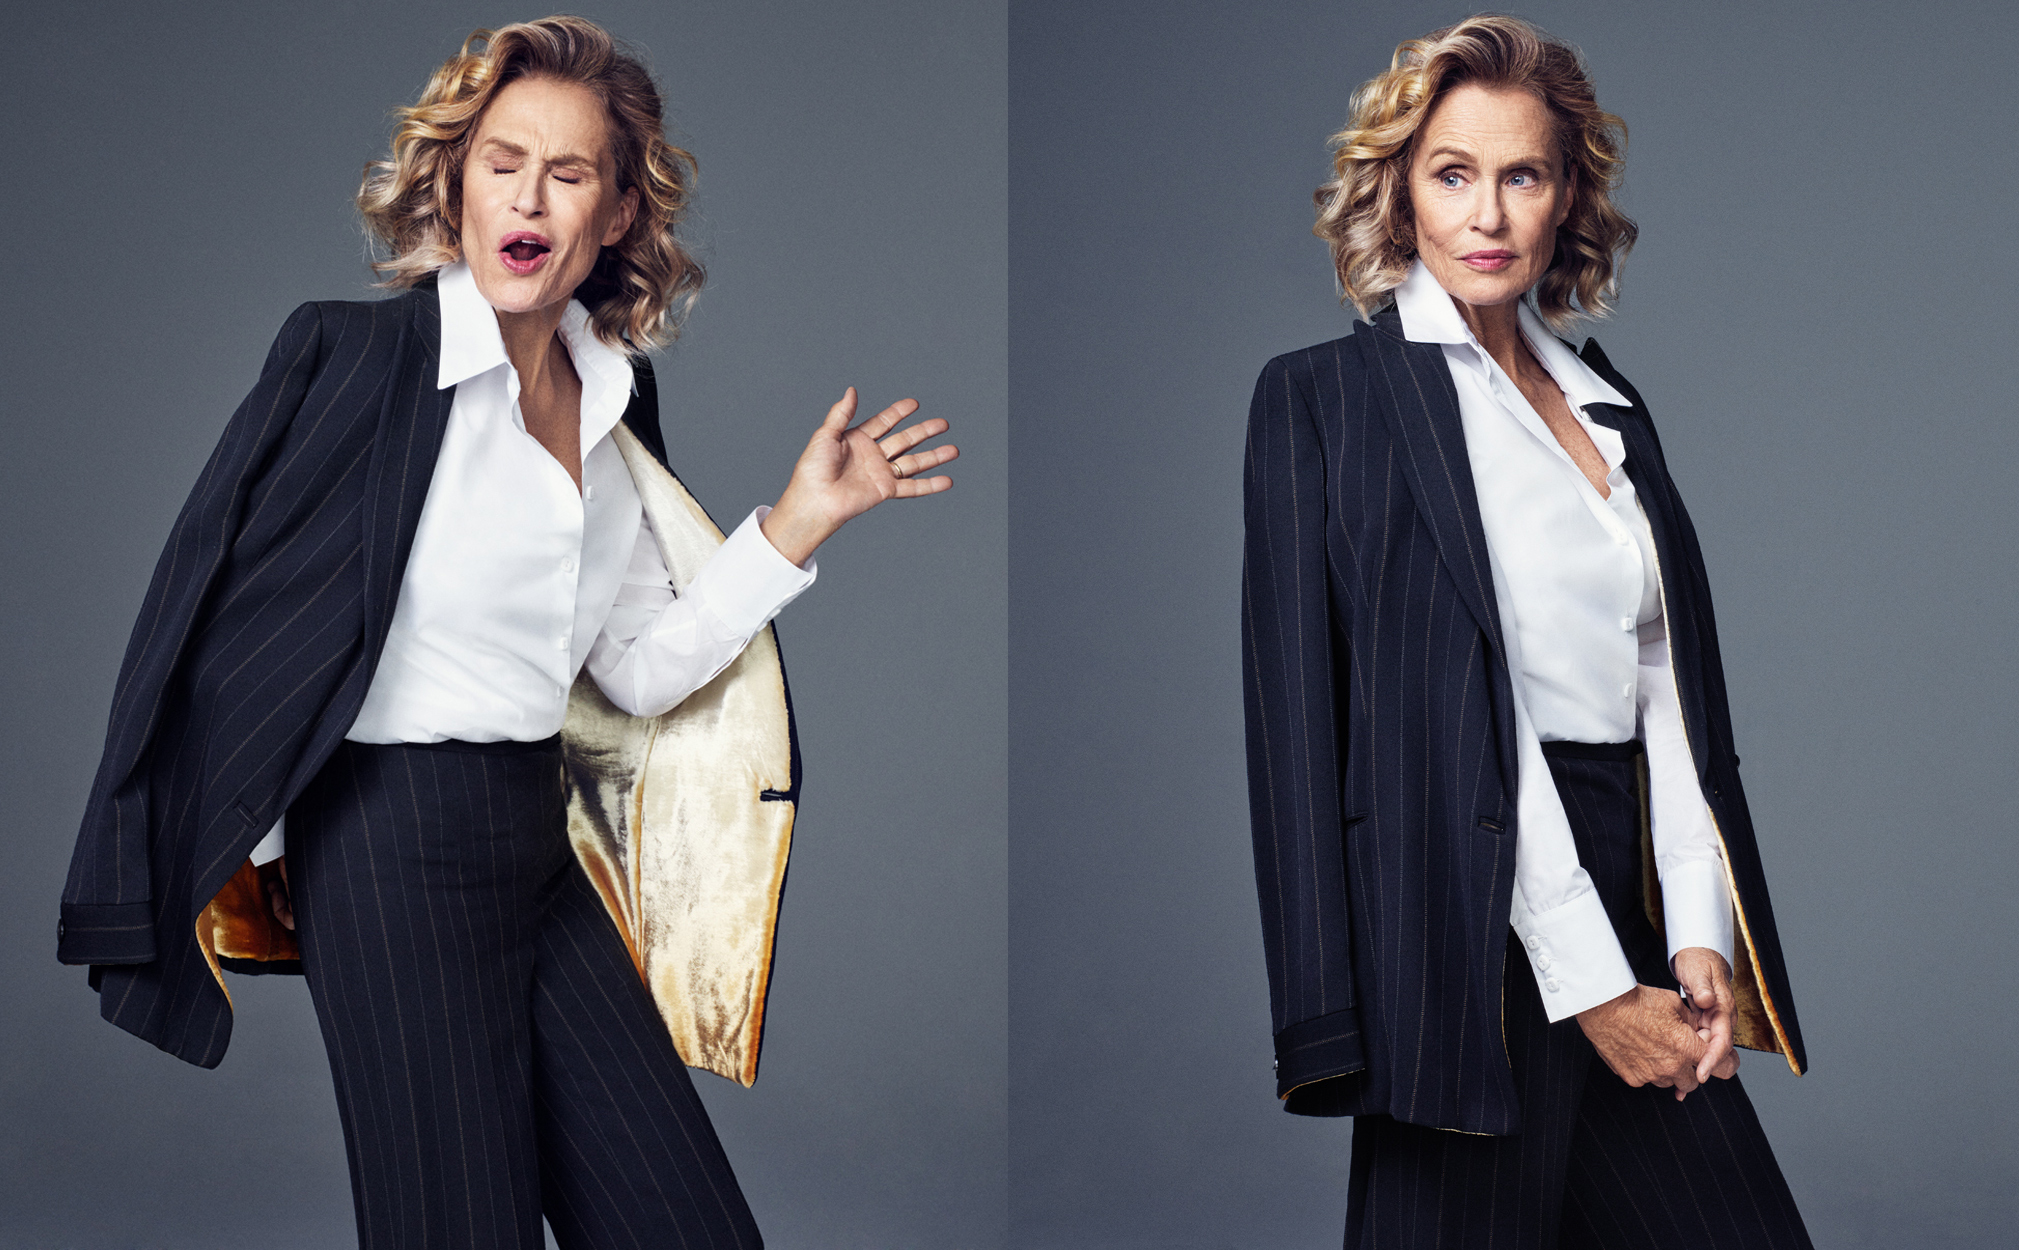 Celebrity Photographer Michael Schwartz: Lauren Hutton for Harper